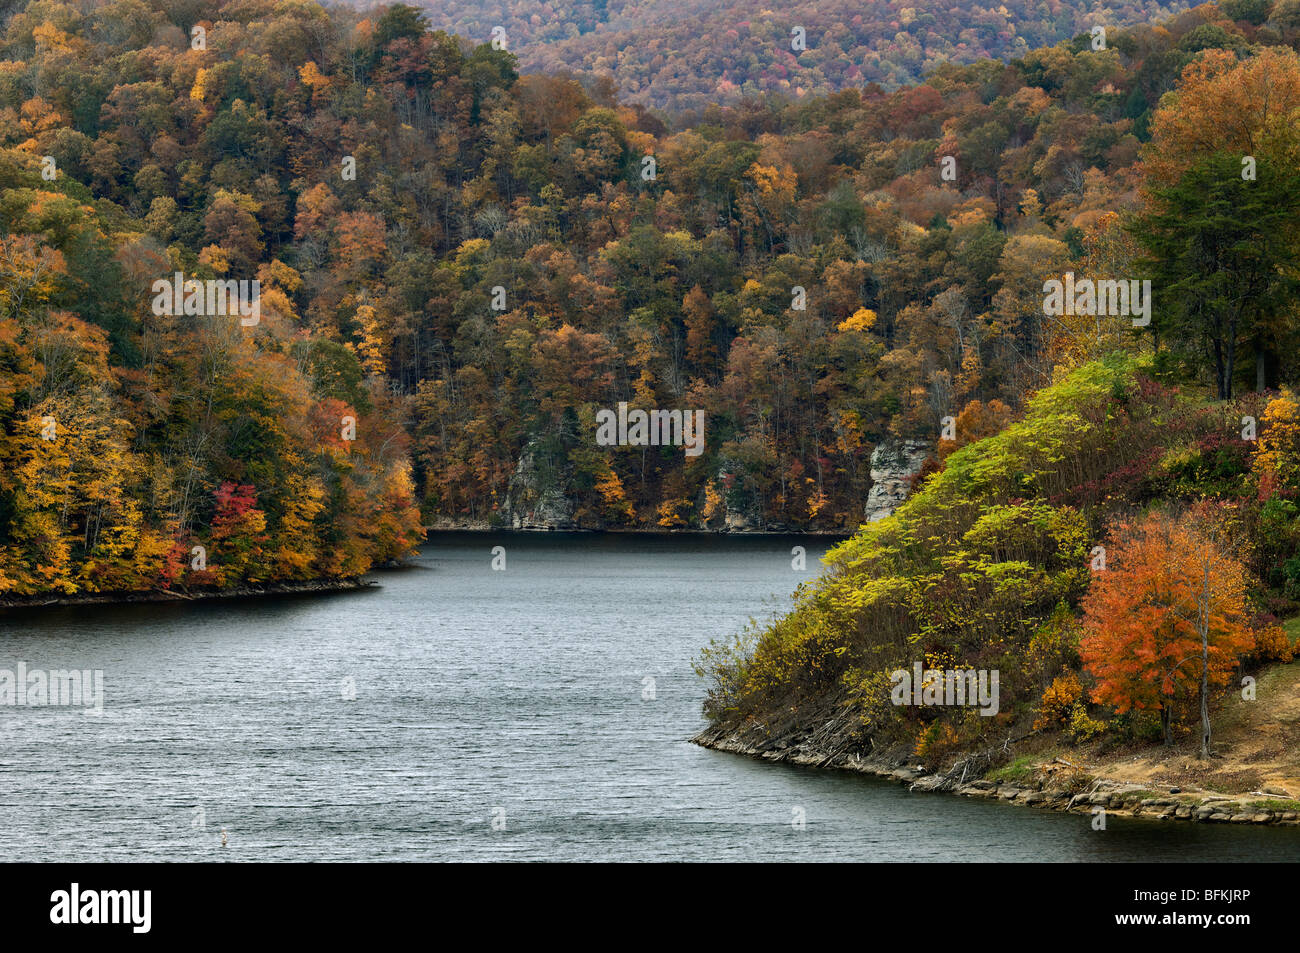 Autumn Color on John W Flannagan Lake in Dickenson County, Virginia - Stock Image